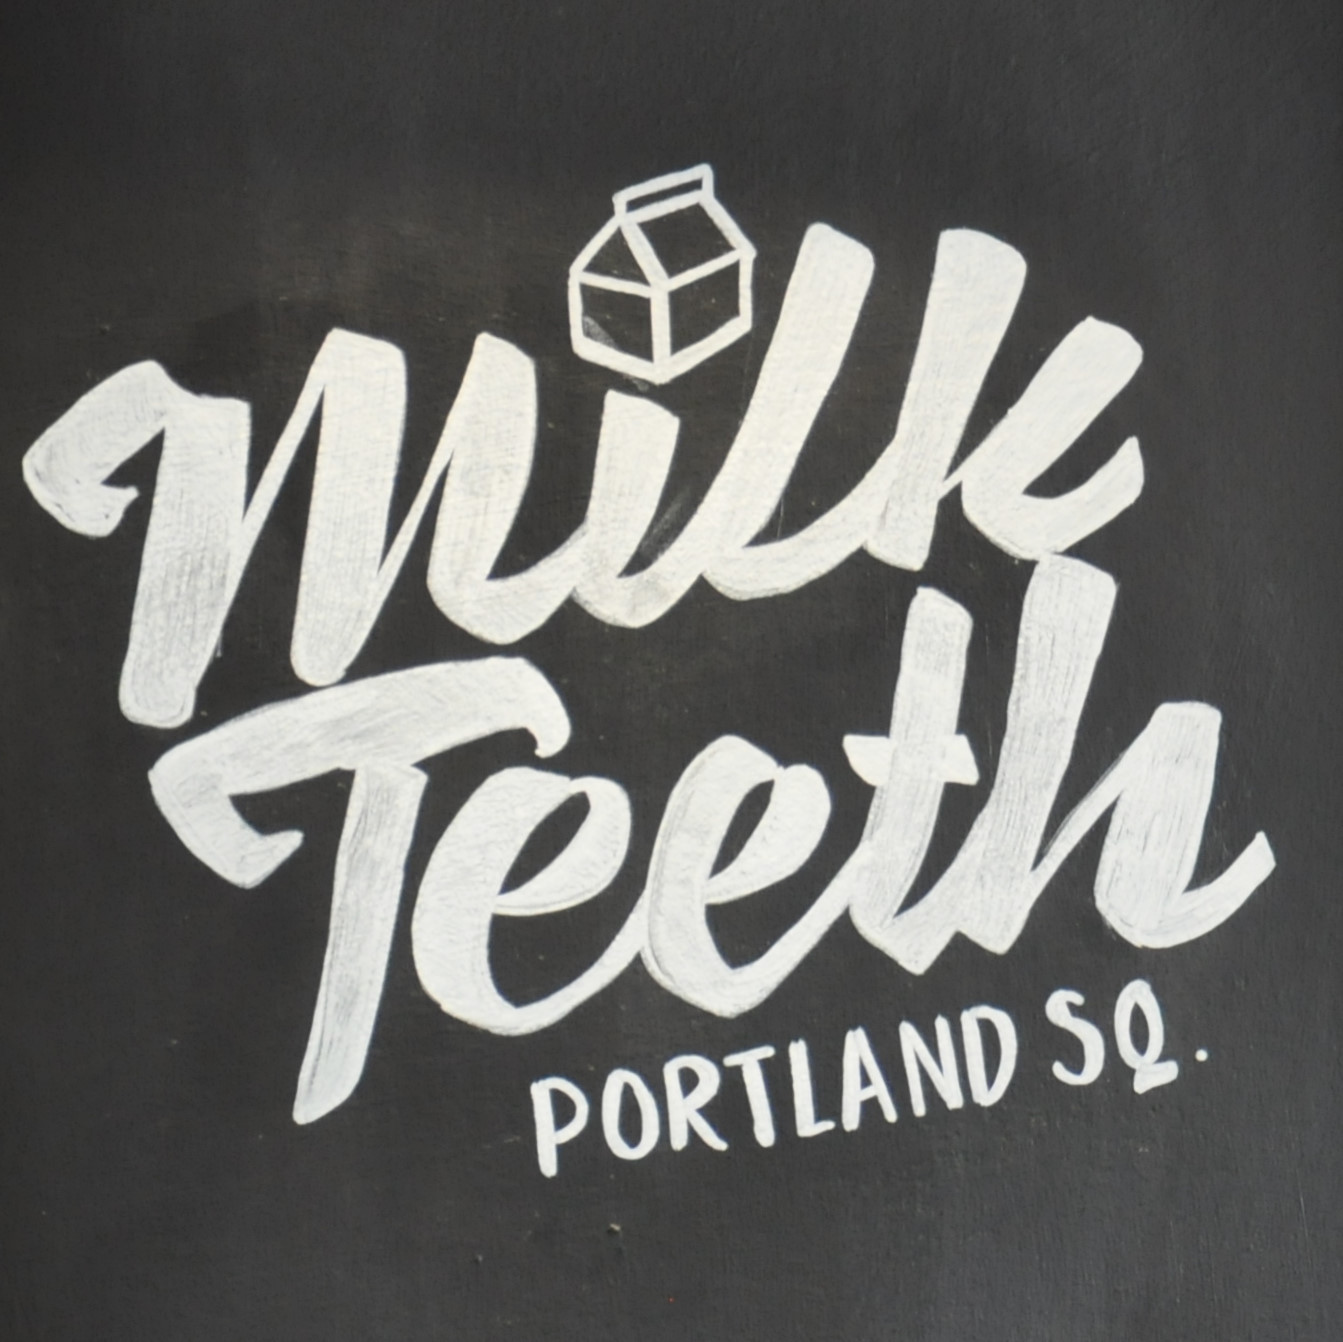 The Milk Teeth logo from the chalkboard just inside the door at Portland Square.